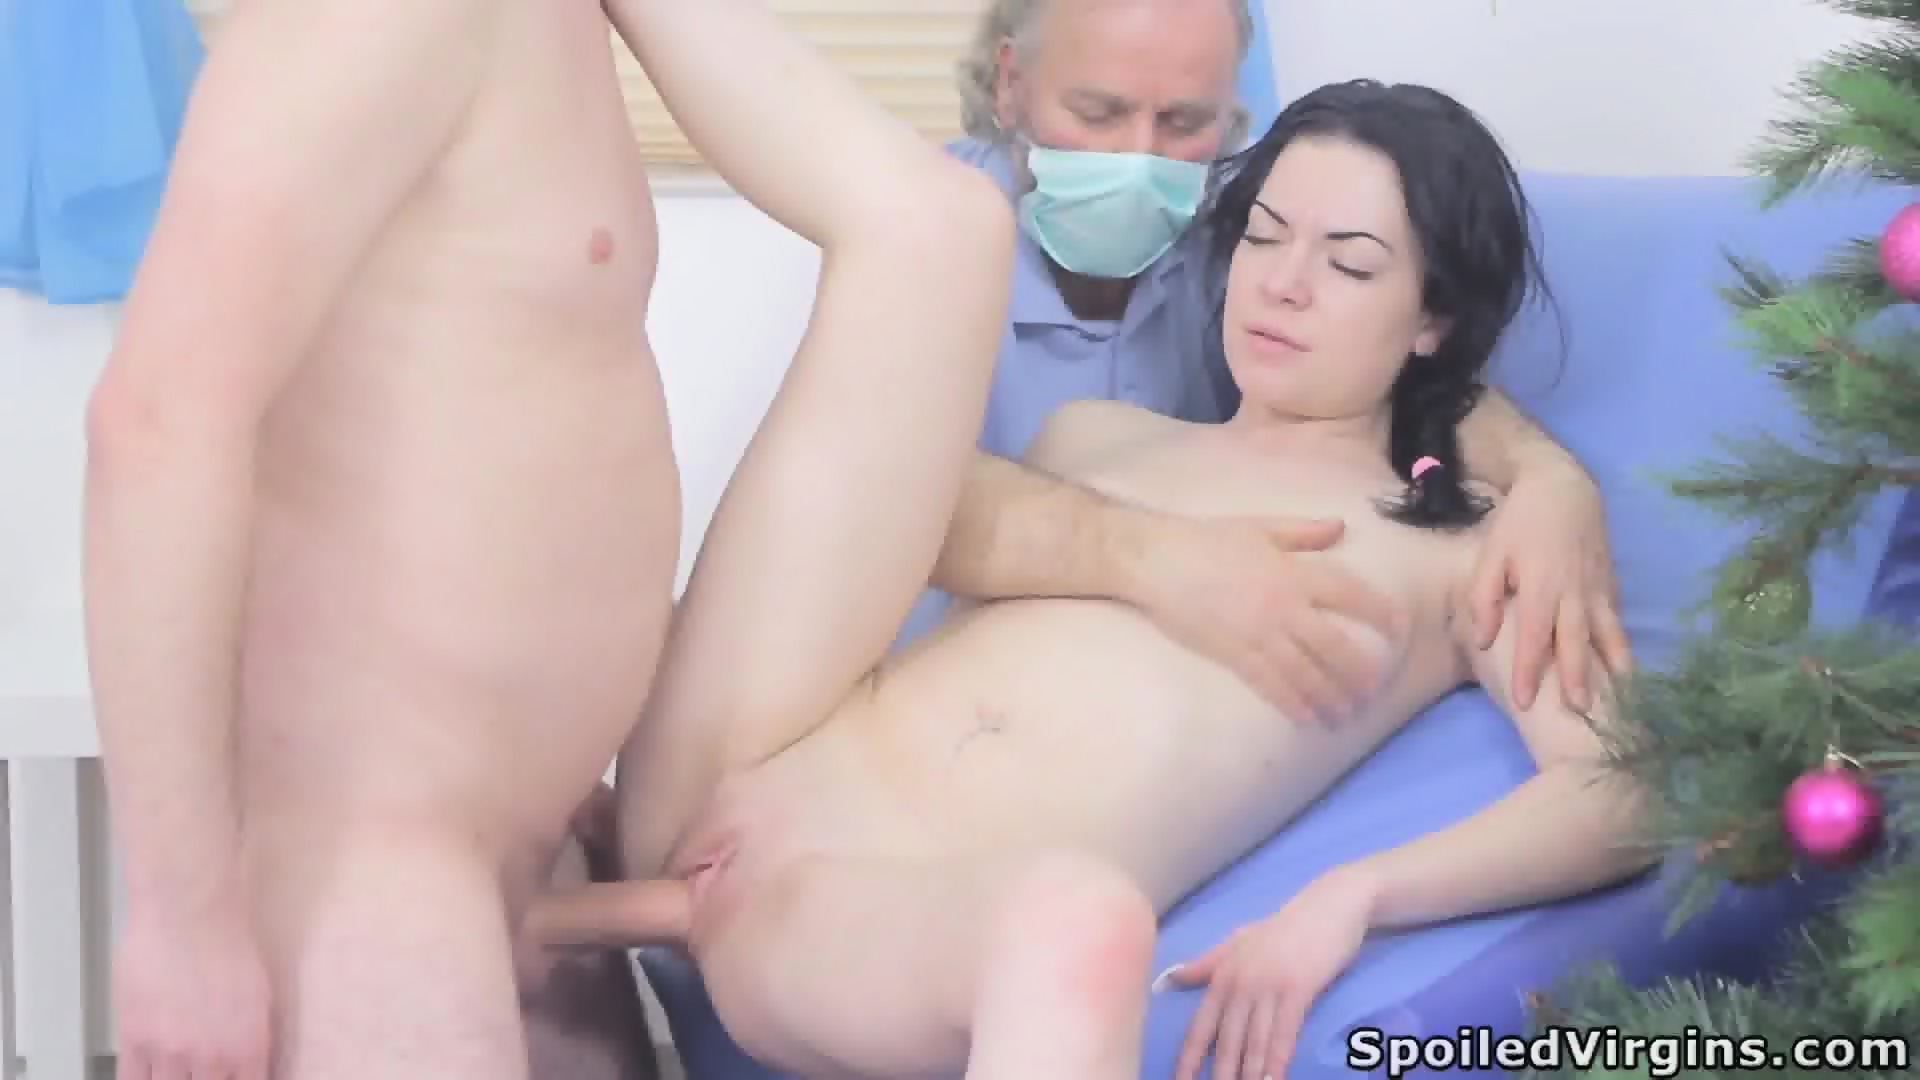 18 virgin sex young dana loves getting her pussy 2